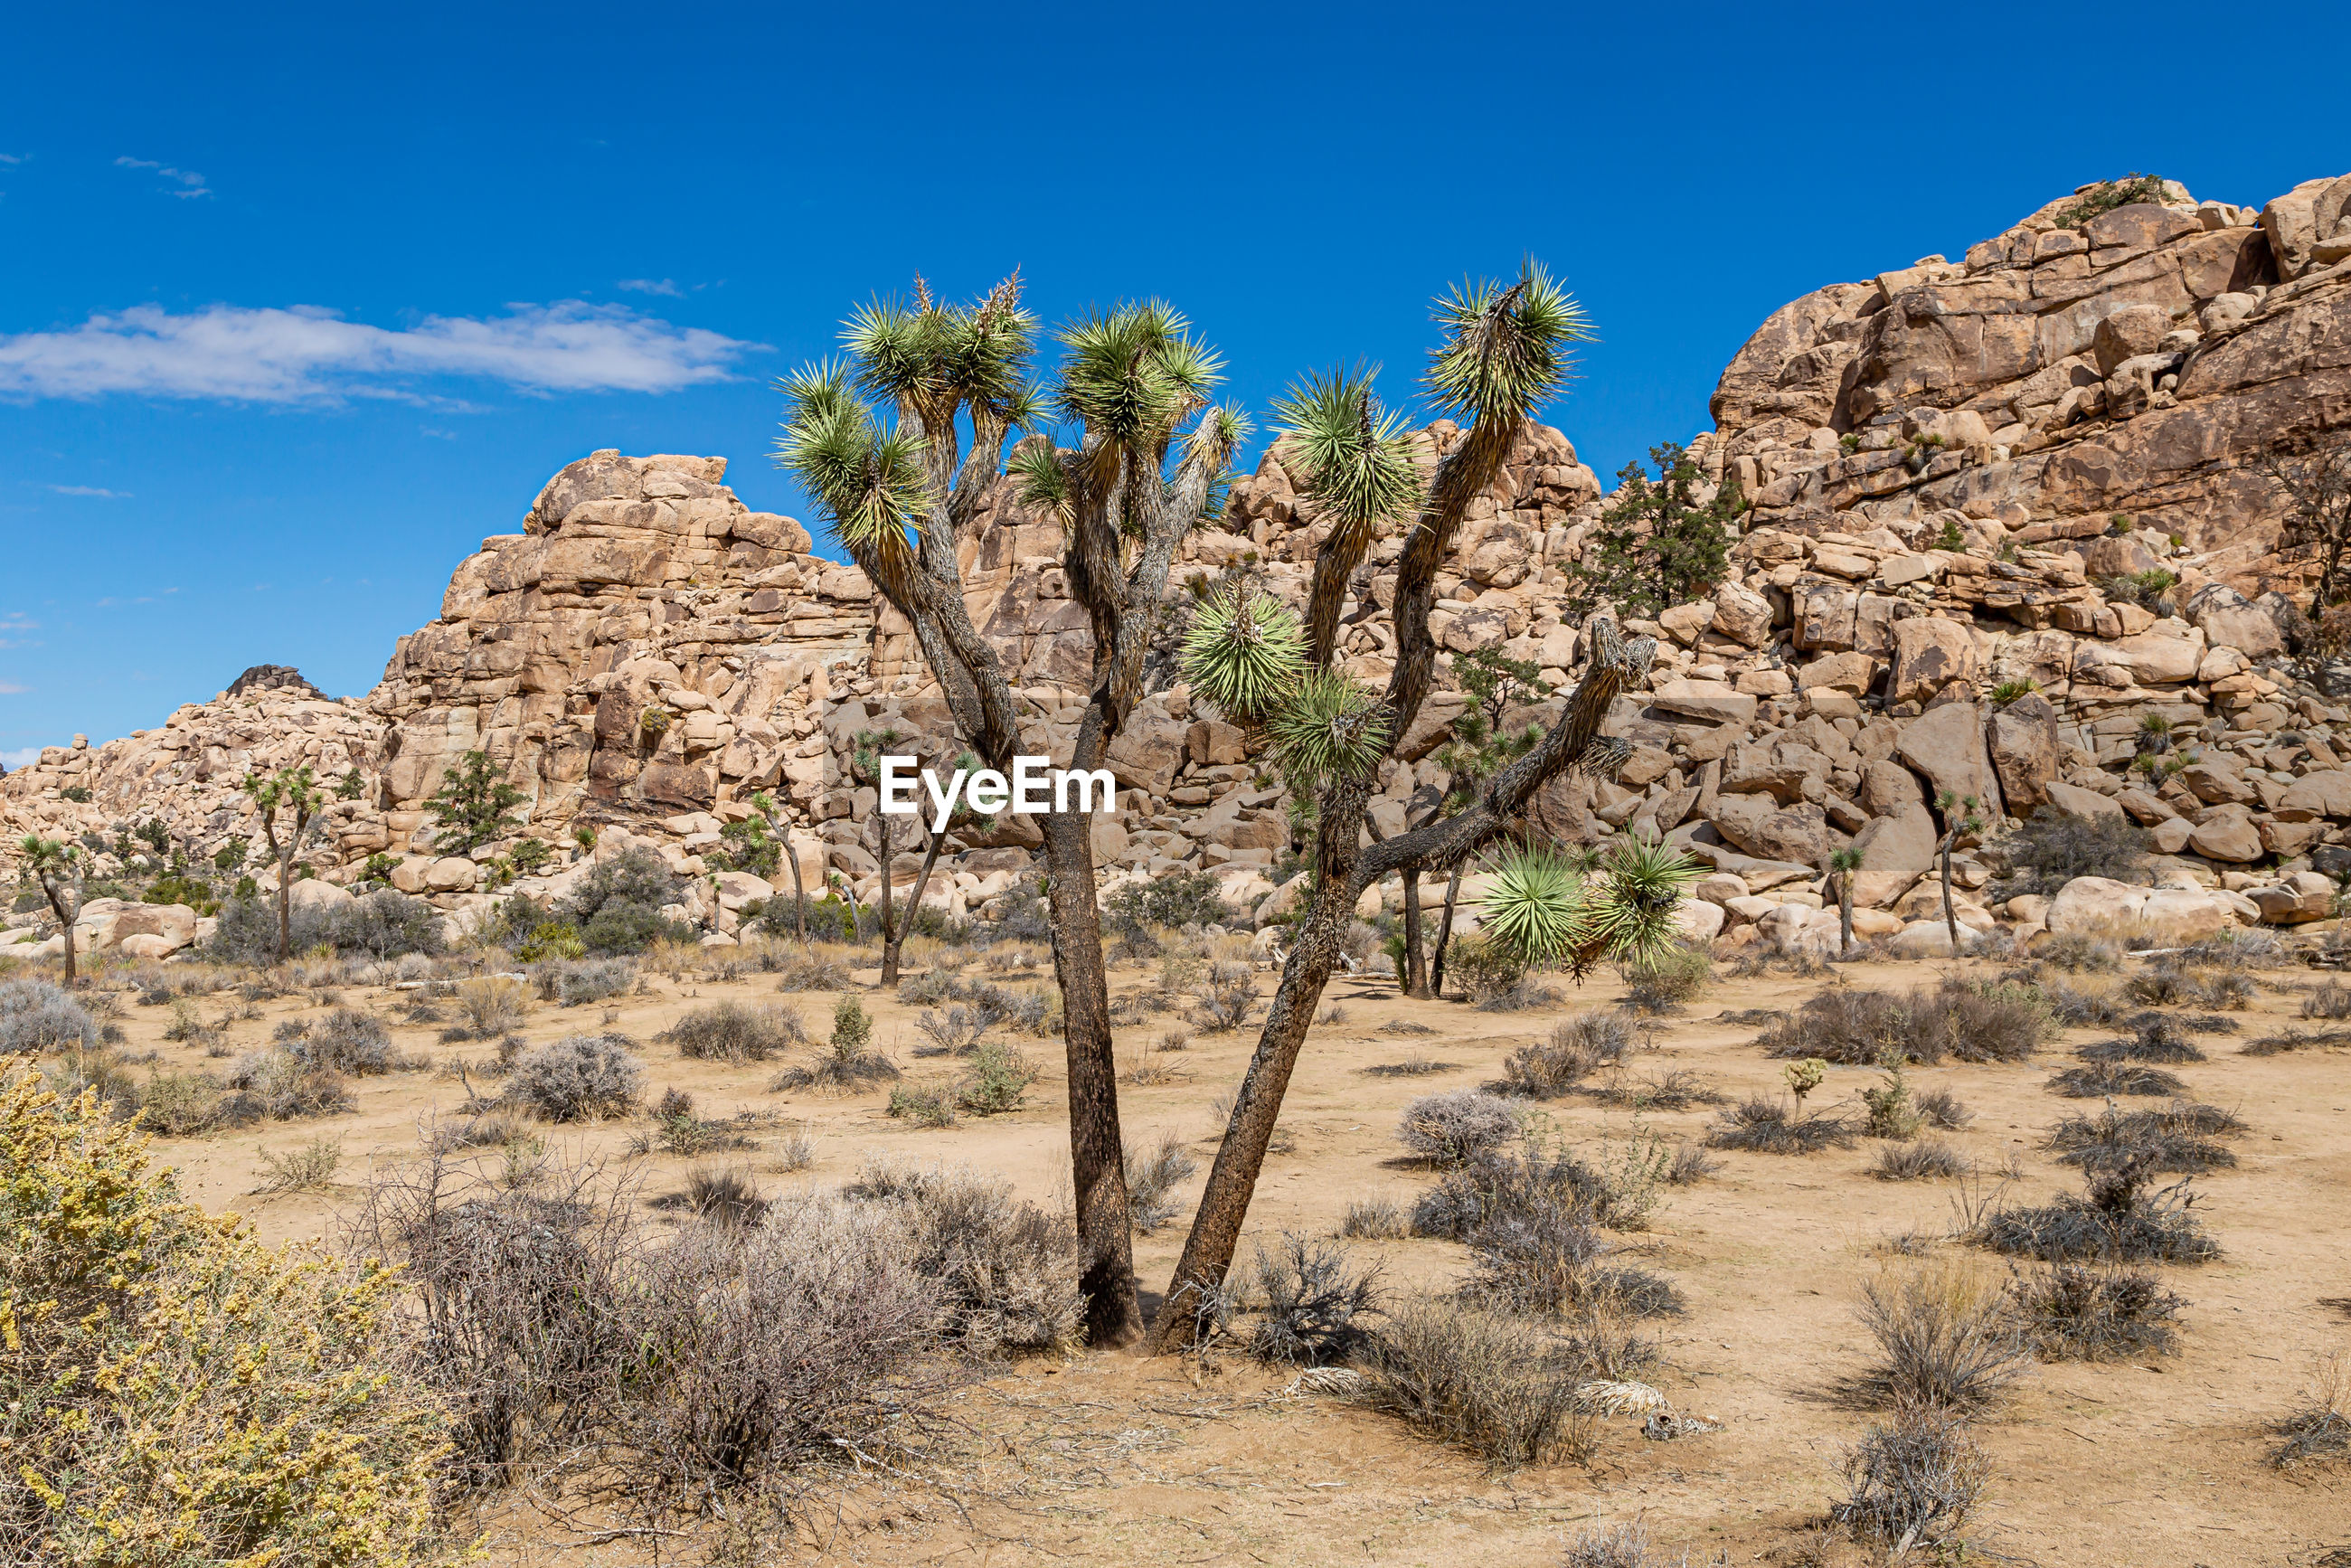 SCENIC VIEW OF ROCK FORMATIONS IN DESERT